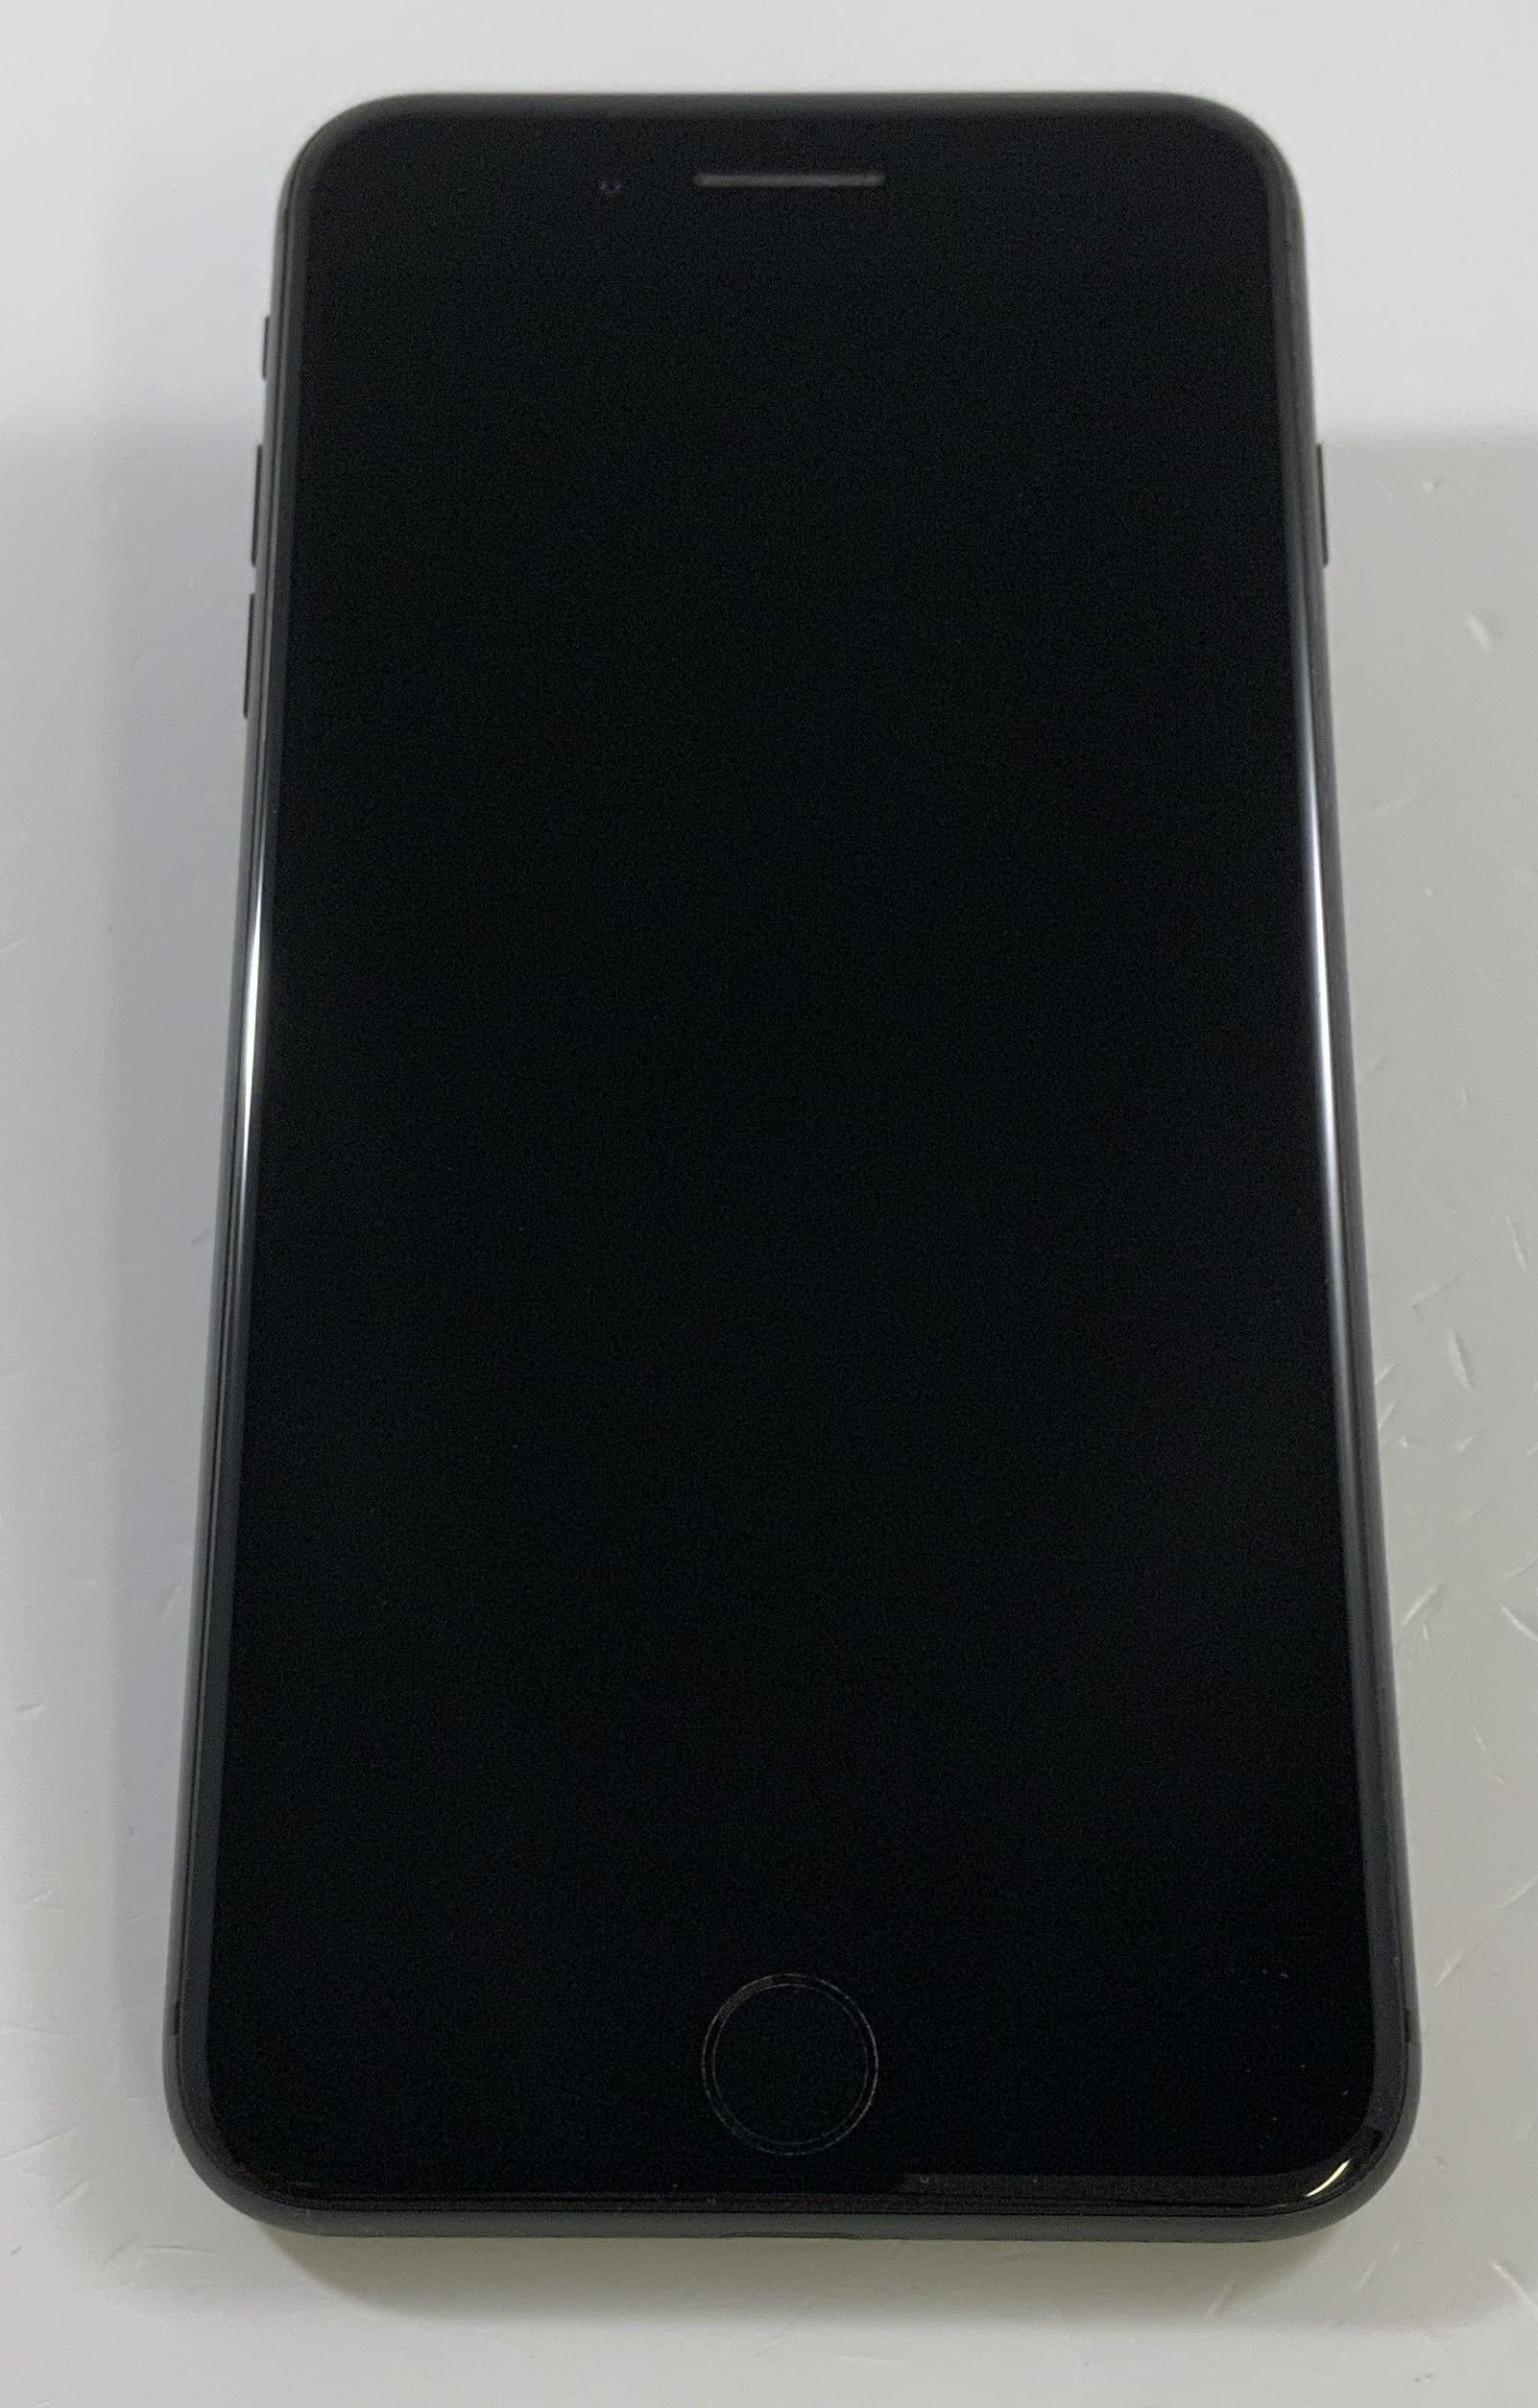 iPhone 8 Plus 256GB, 256GB, Space Gray, Afbeelding 1